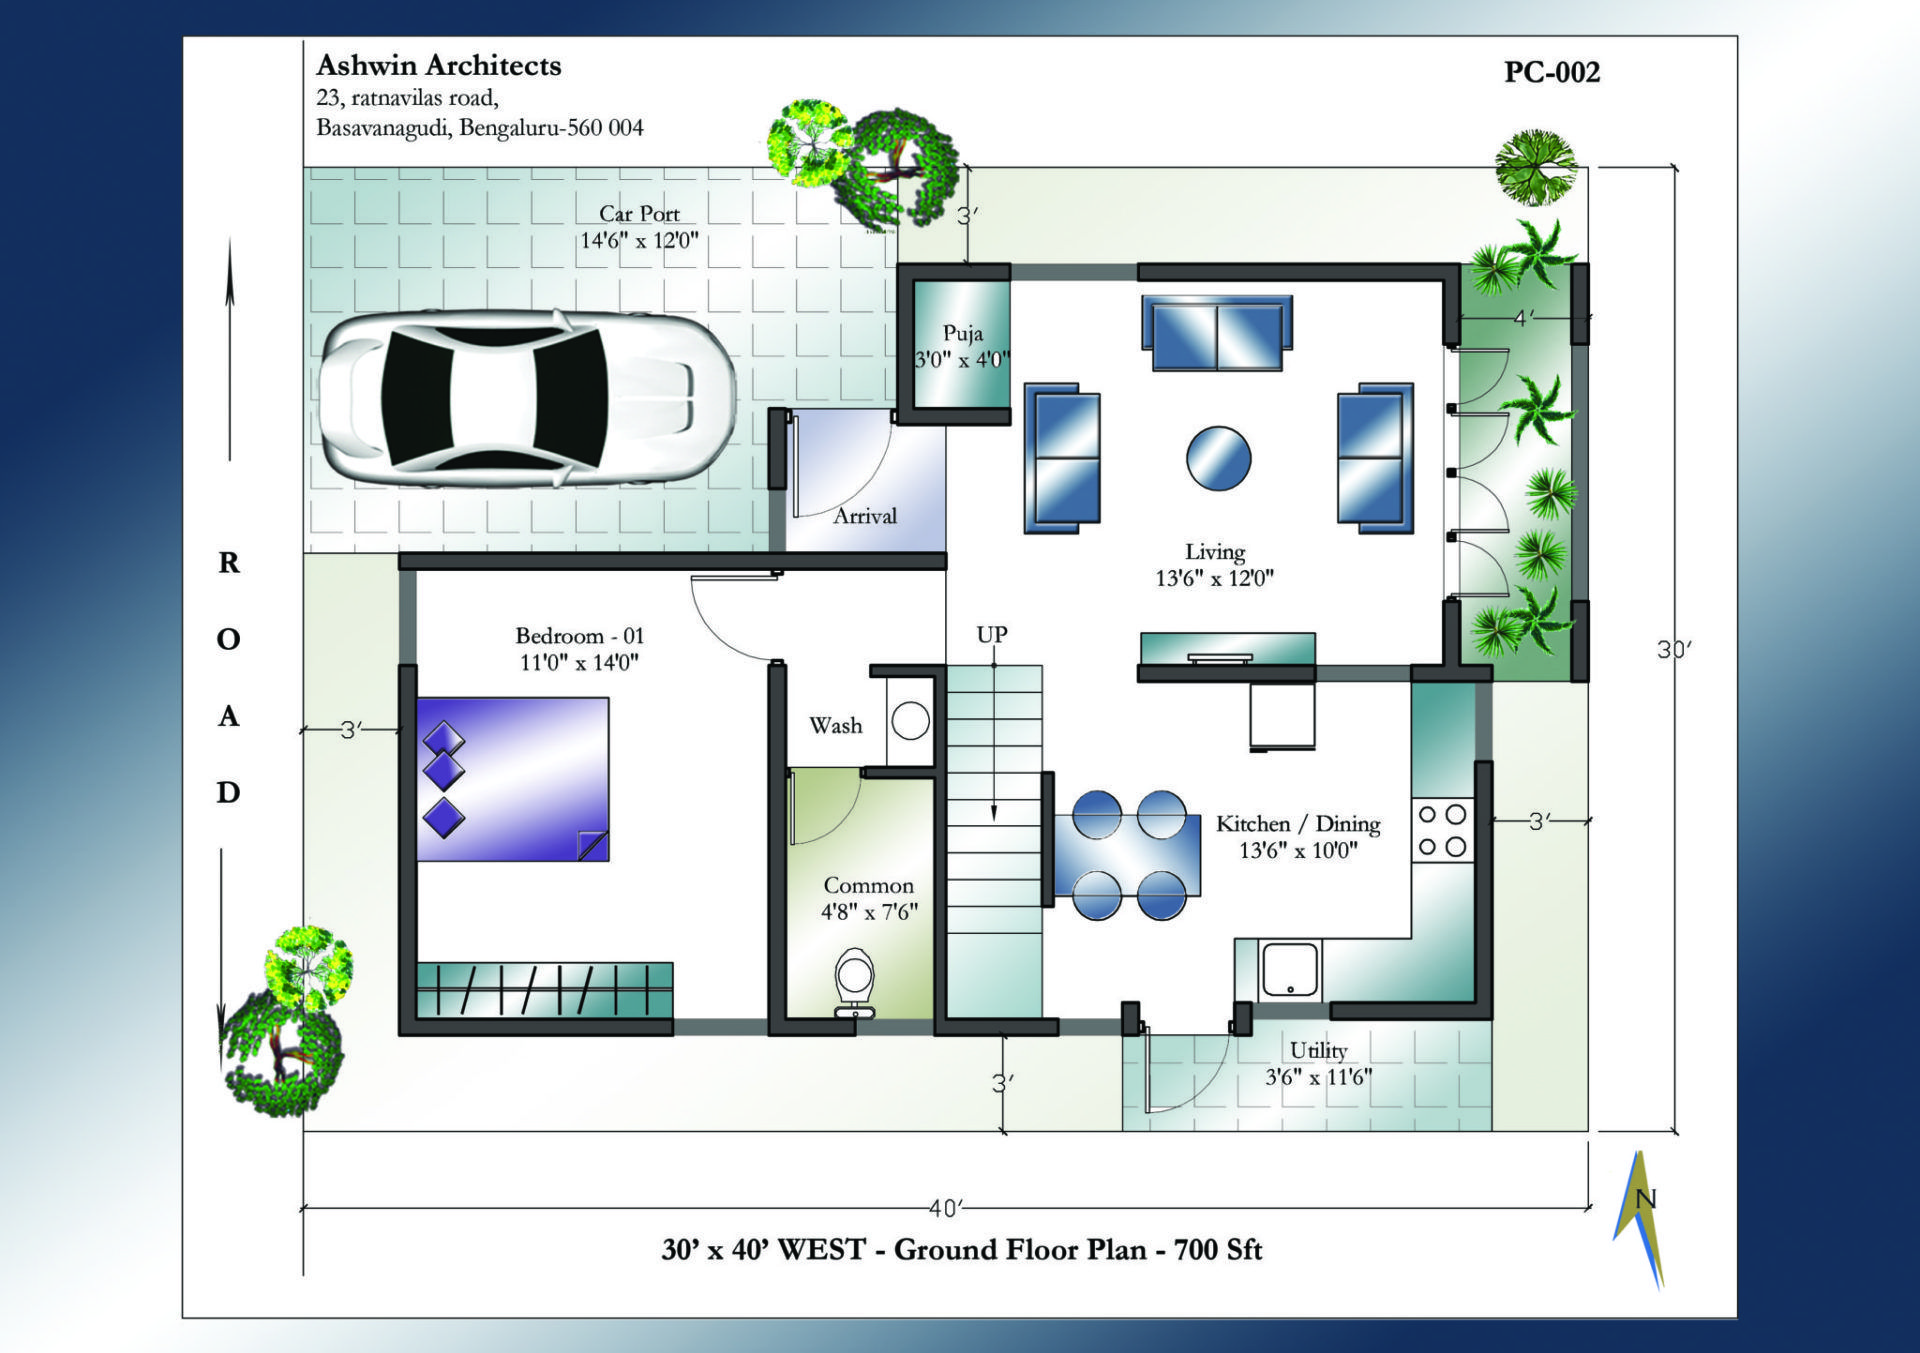 30 X 40 West Facing House Plans Ground Floor West Facing House Indian House Plans 30x40 House Plans